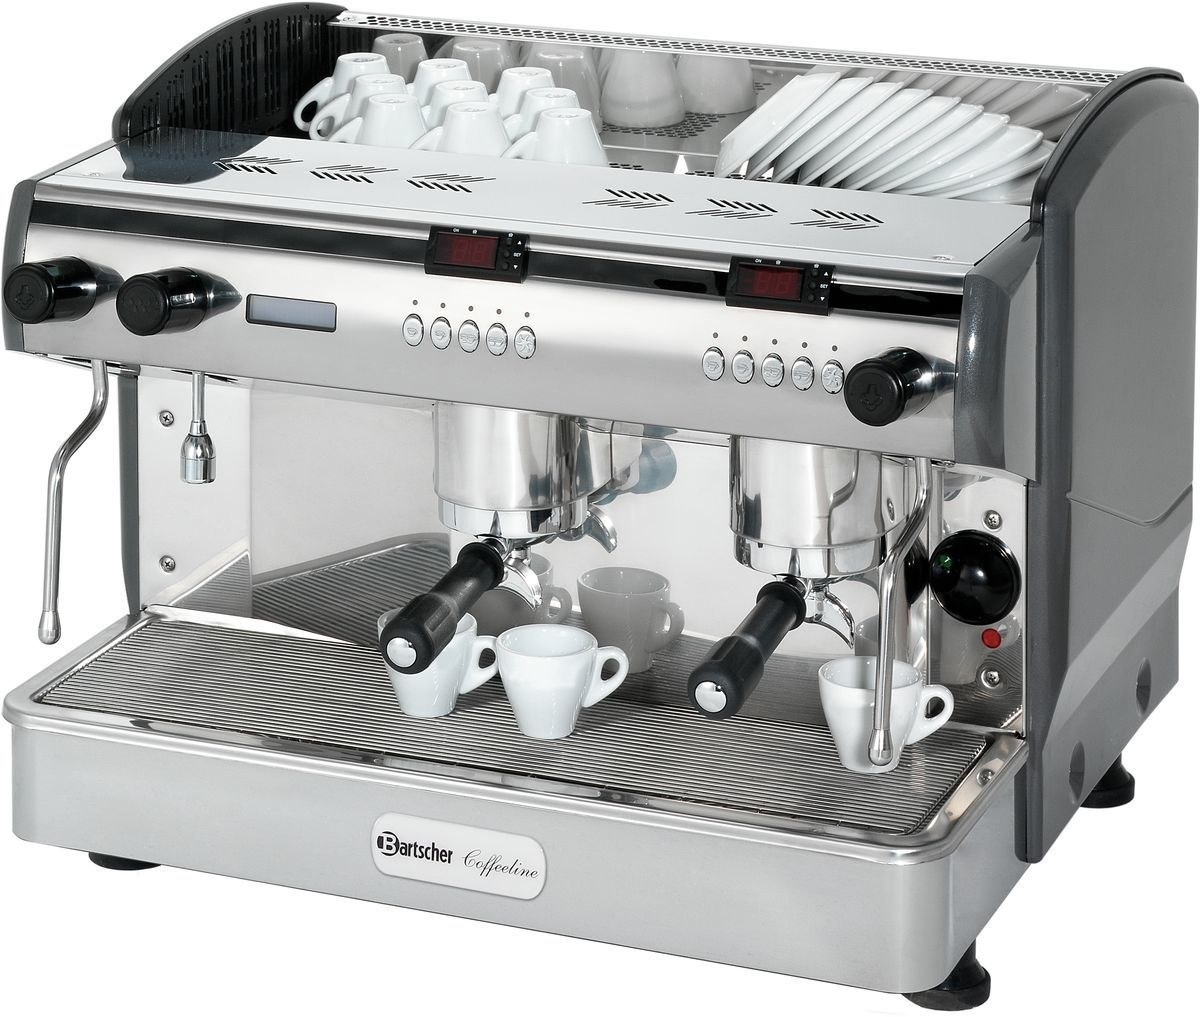 EKSPRES DO KAWY 2-GR. COFFEELINE G2 PLUS BARTSCHER